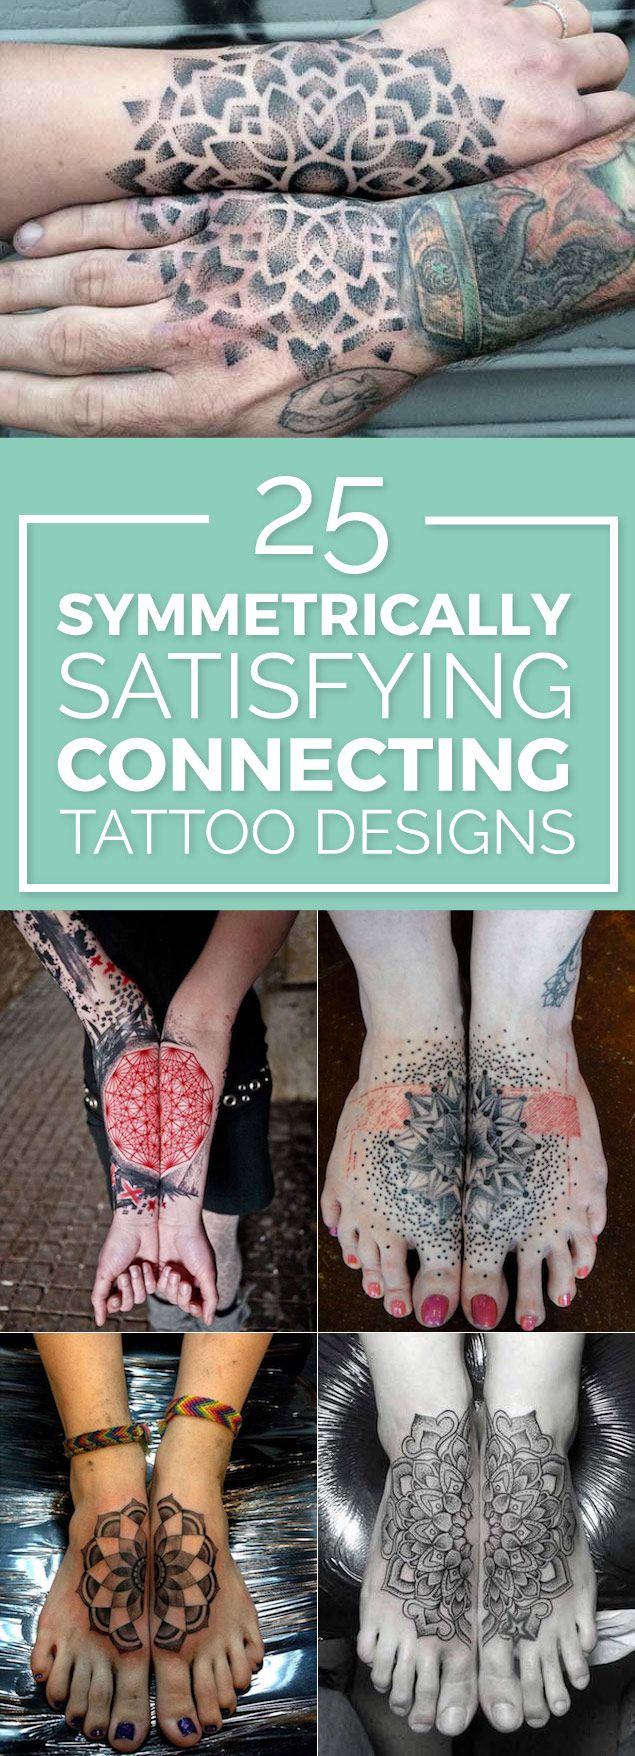 Symmetrical Tattoo Designs you NEED to see